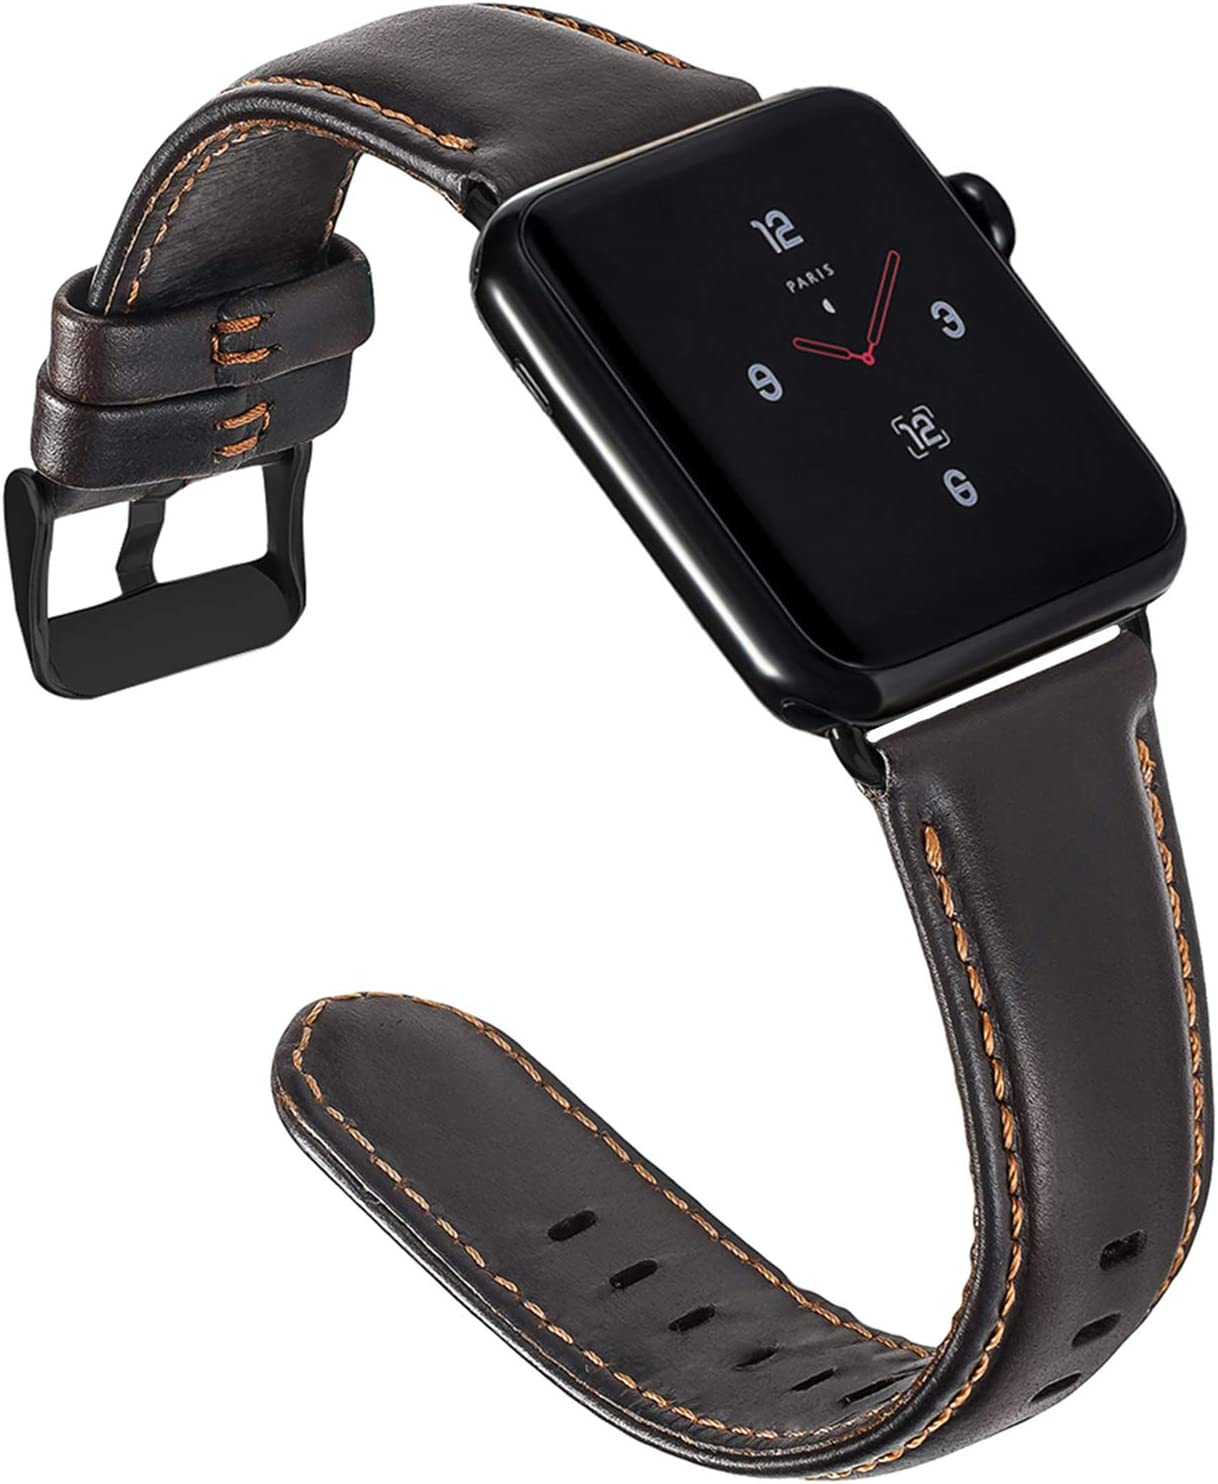 ALADRS Genuine Leather Watch Straps Compatible for Apple Watch Band 42mm 44mm, Wristbands Replacement for iWatch Series 6 5 4, SE (44mm) Series 3 2 1 (42mm), Coffee